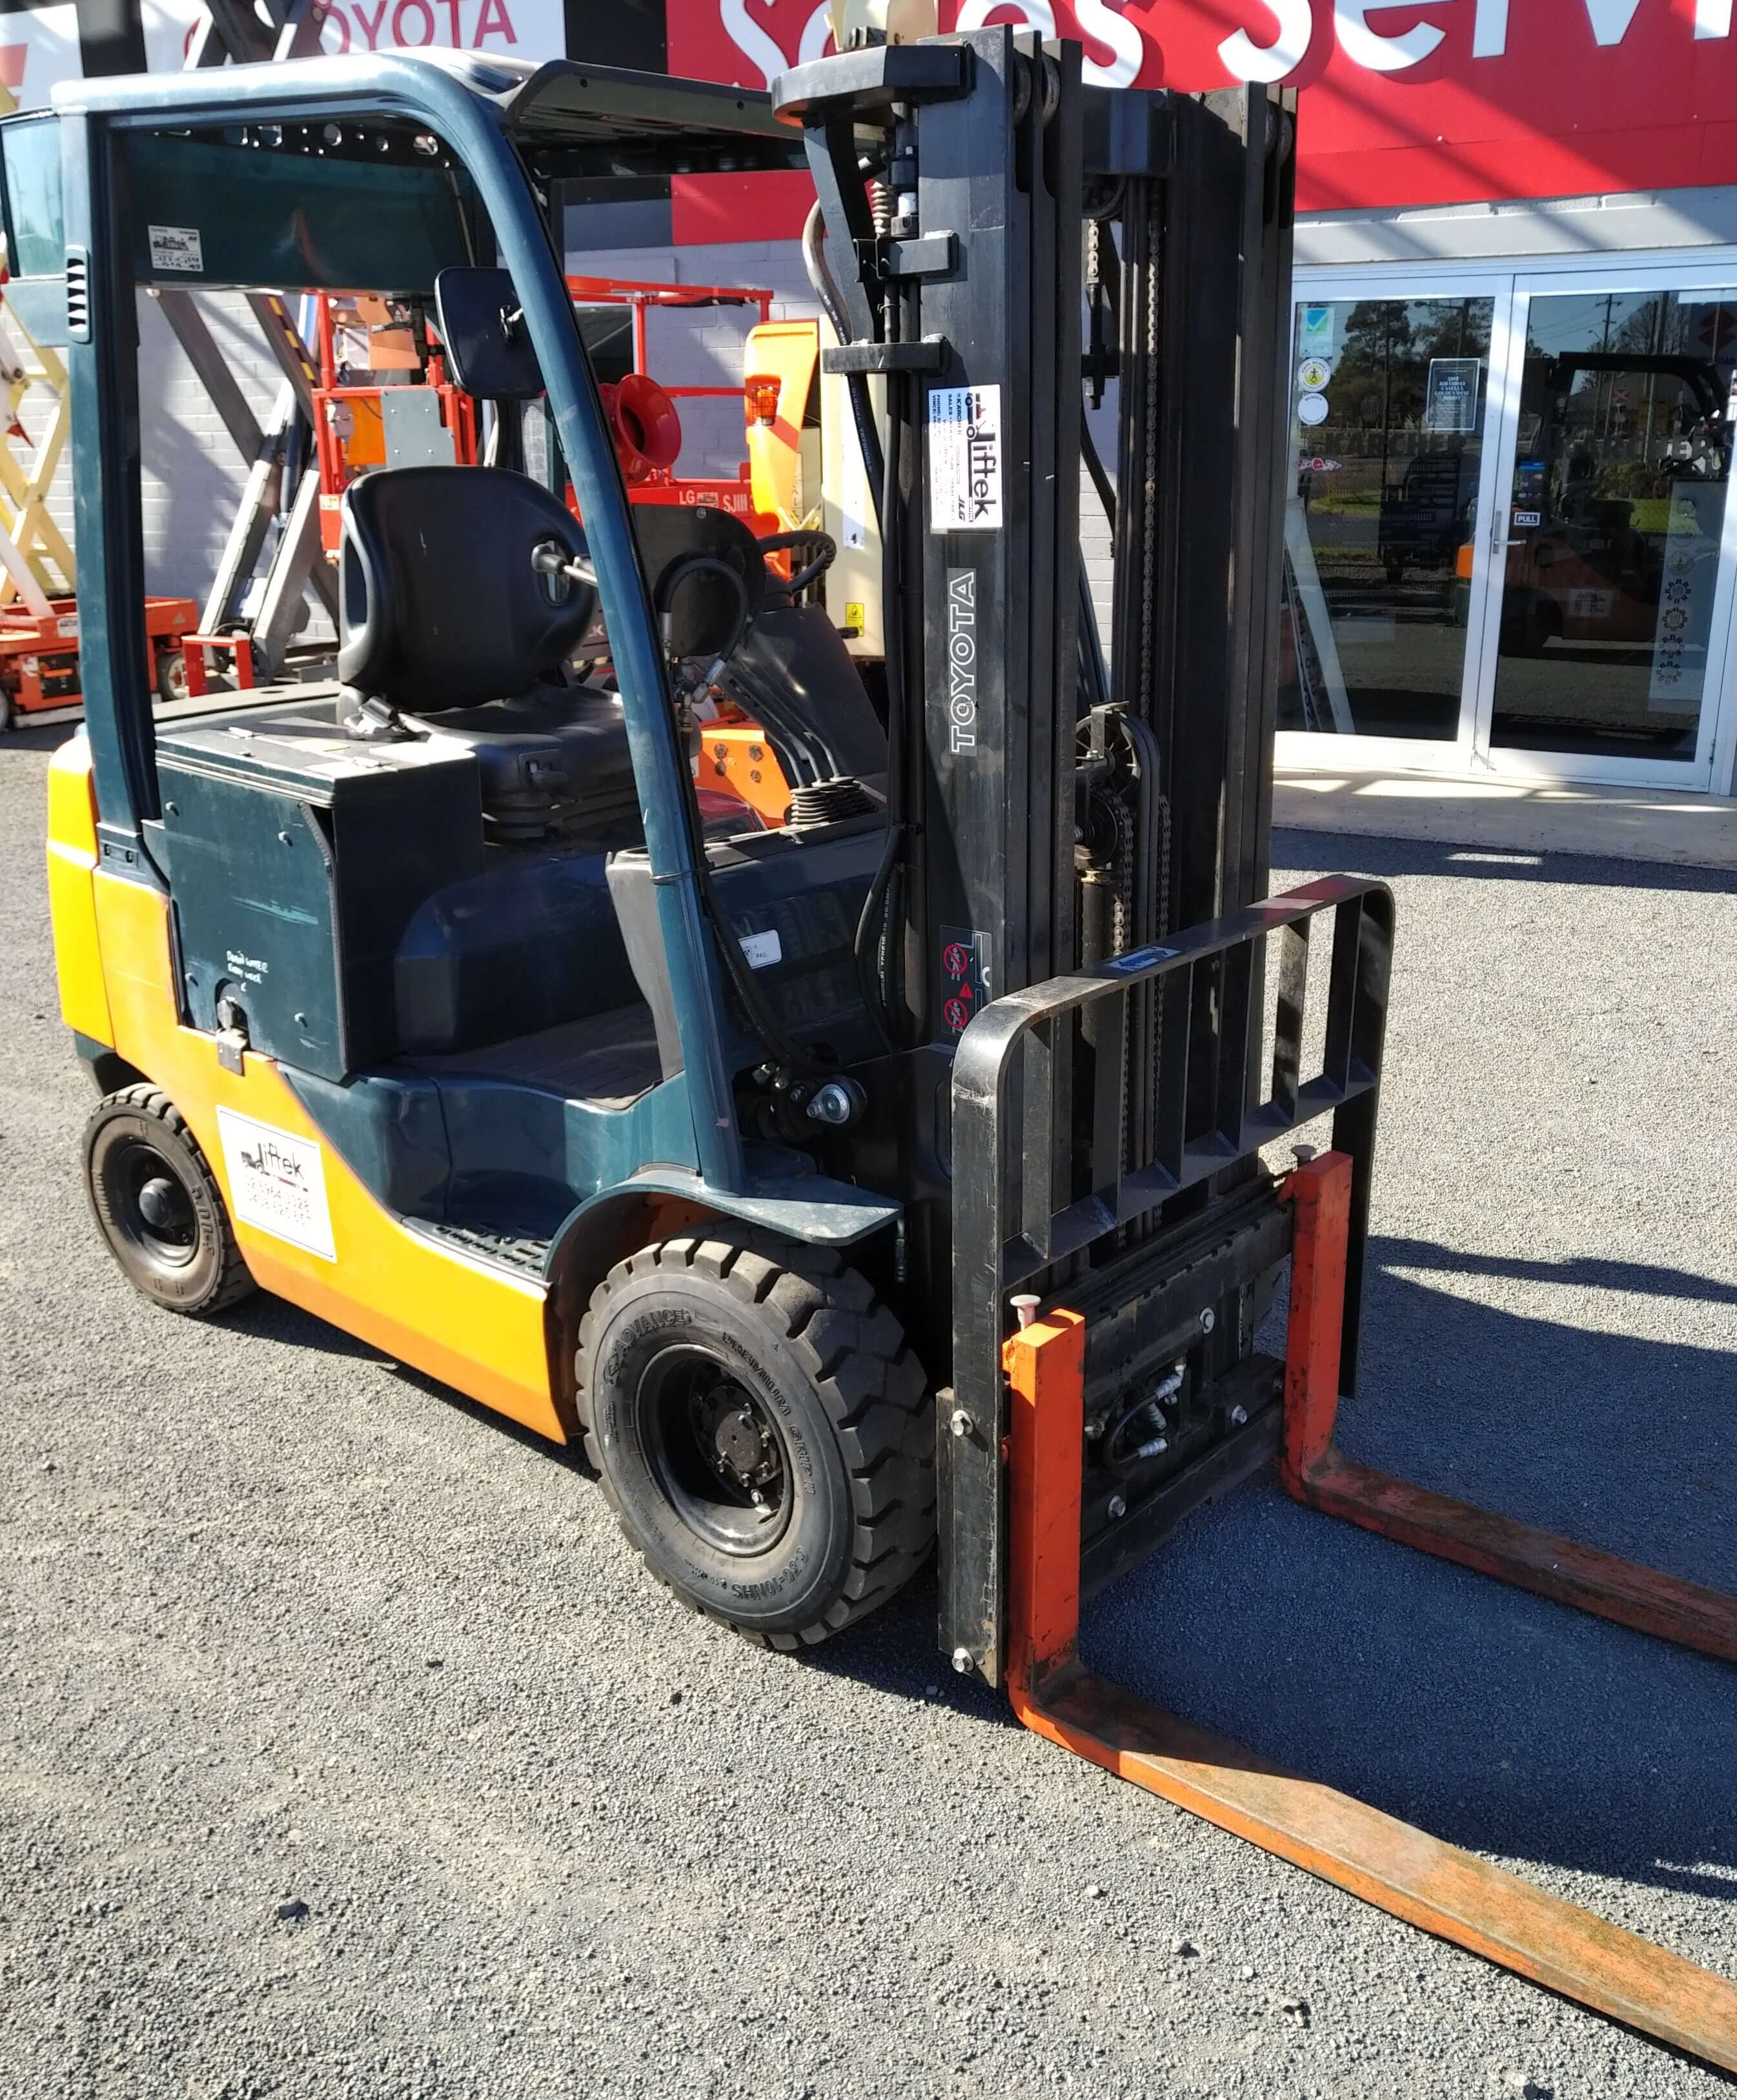 Diesel vs LPG vs Electric Forklifts: Which is Better?